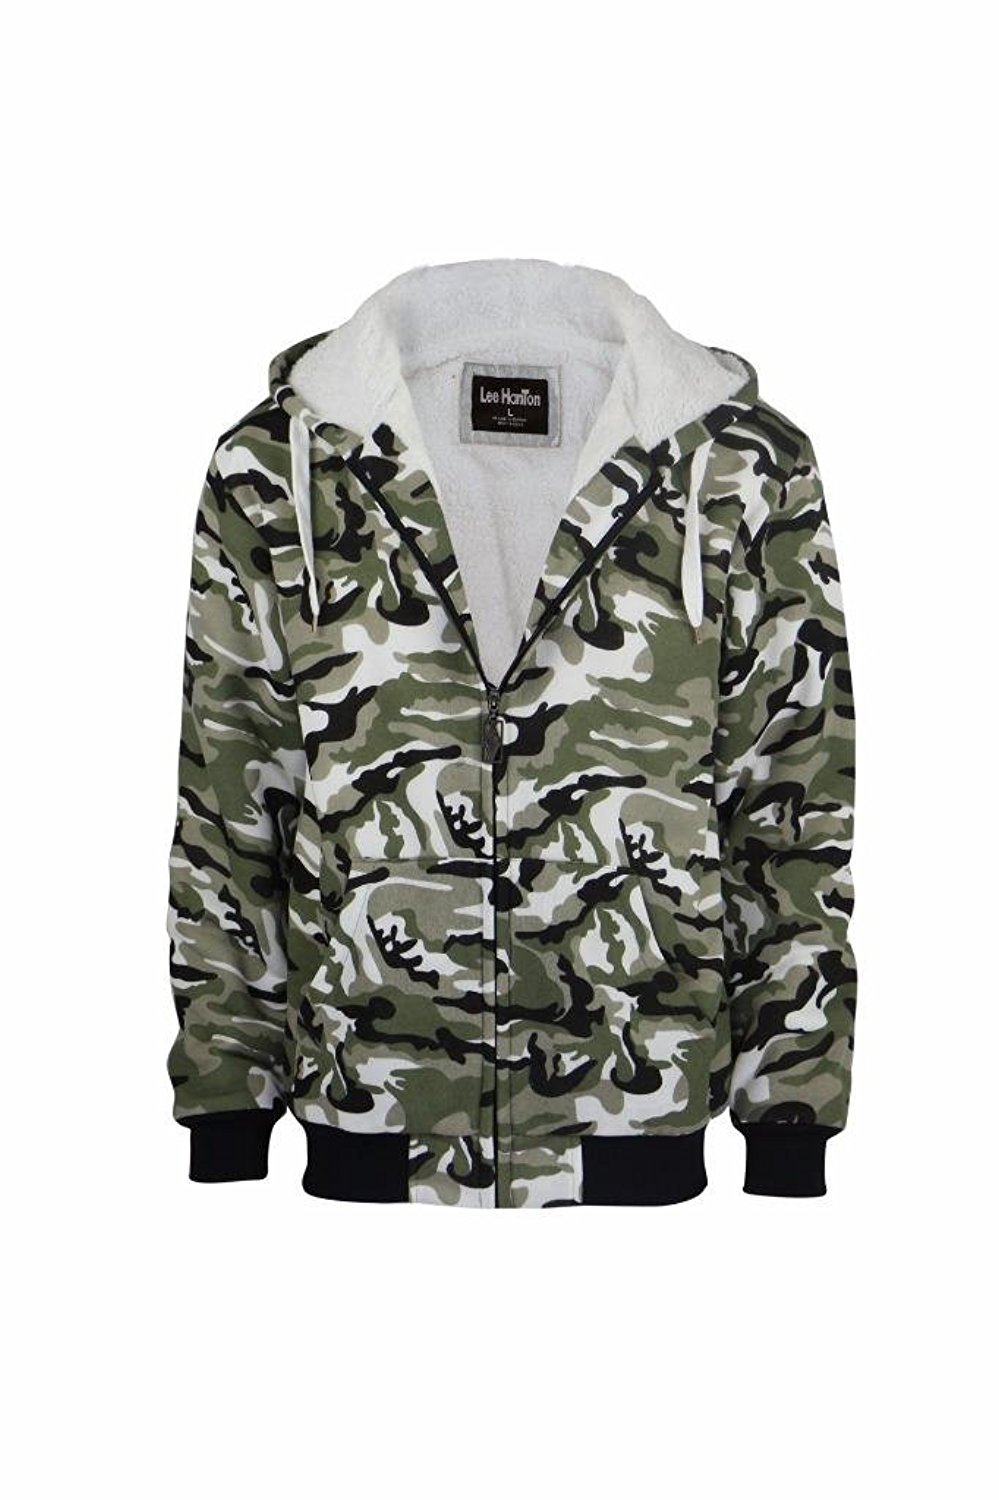 Lee Hanton Men's Full Zip Military Camo Sherpa Lined Fleece Hoodie Sweatshirts